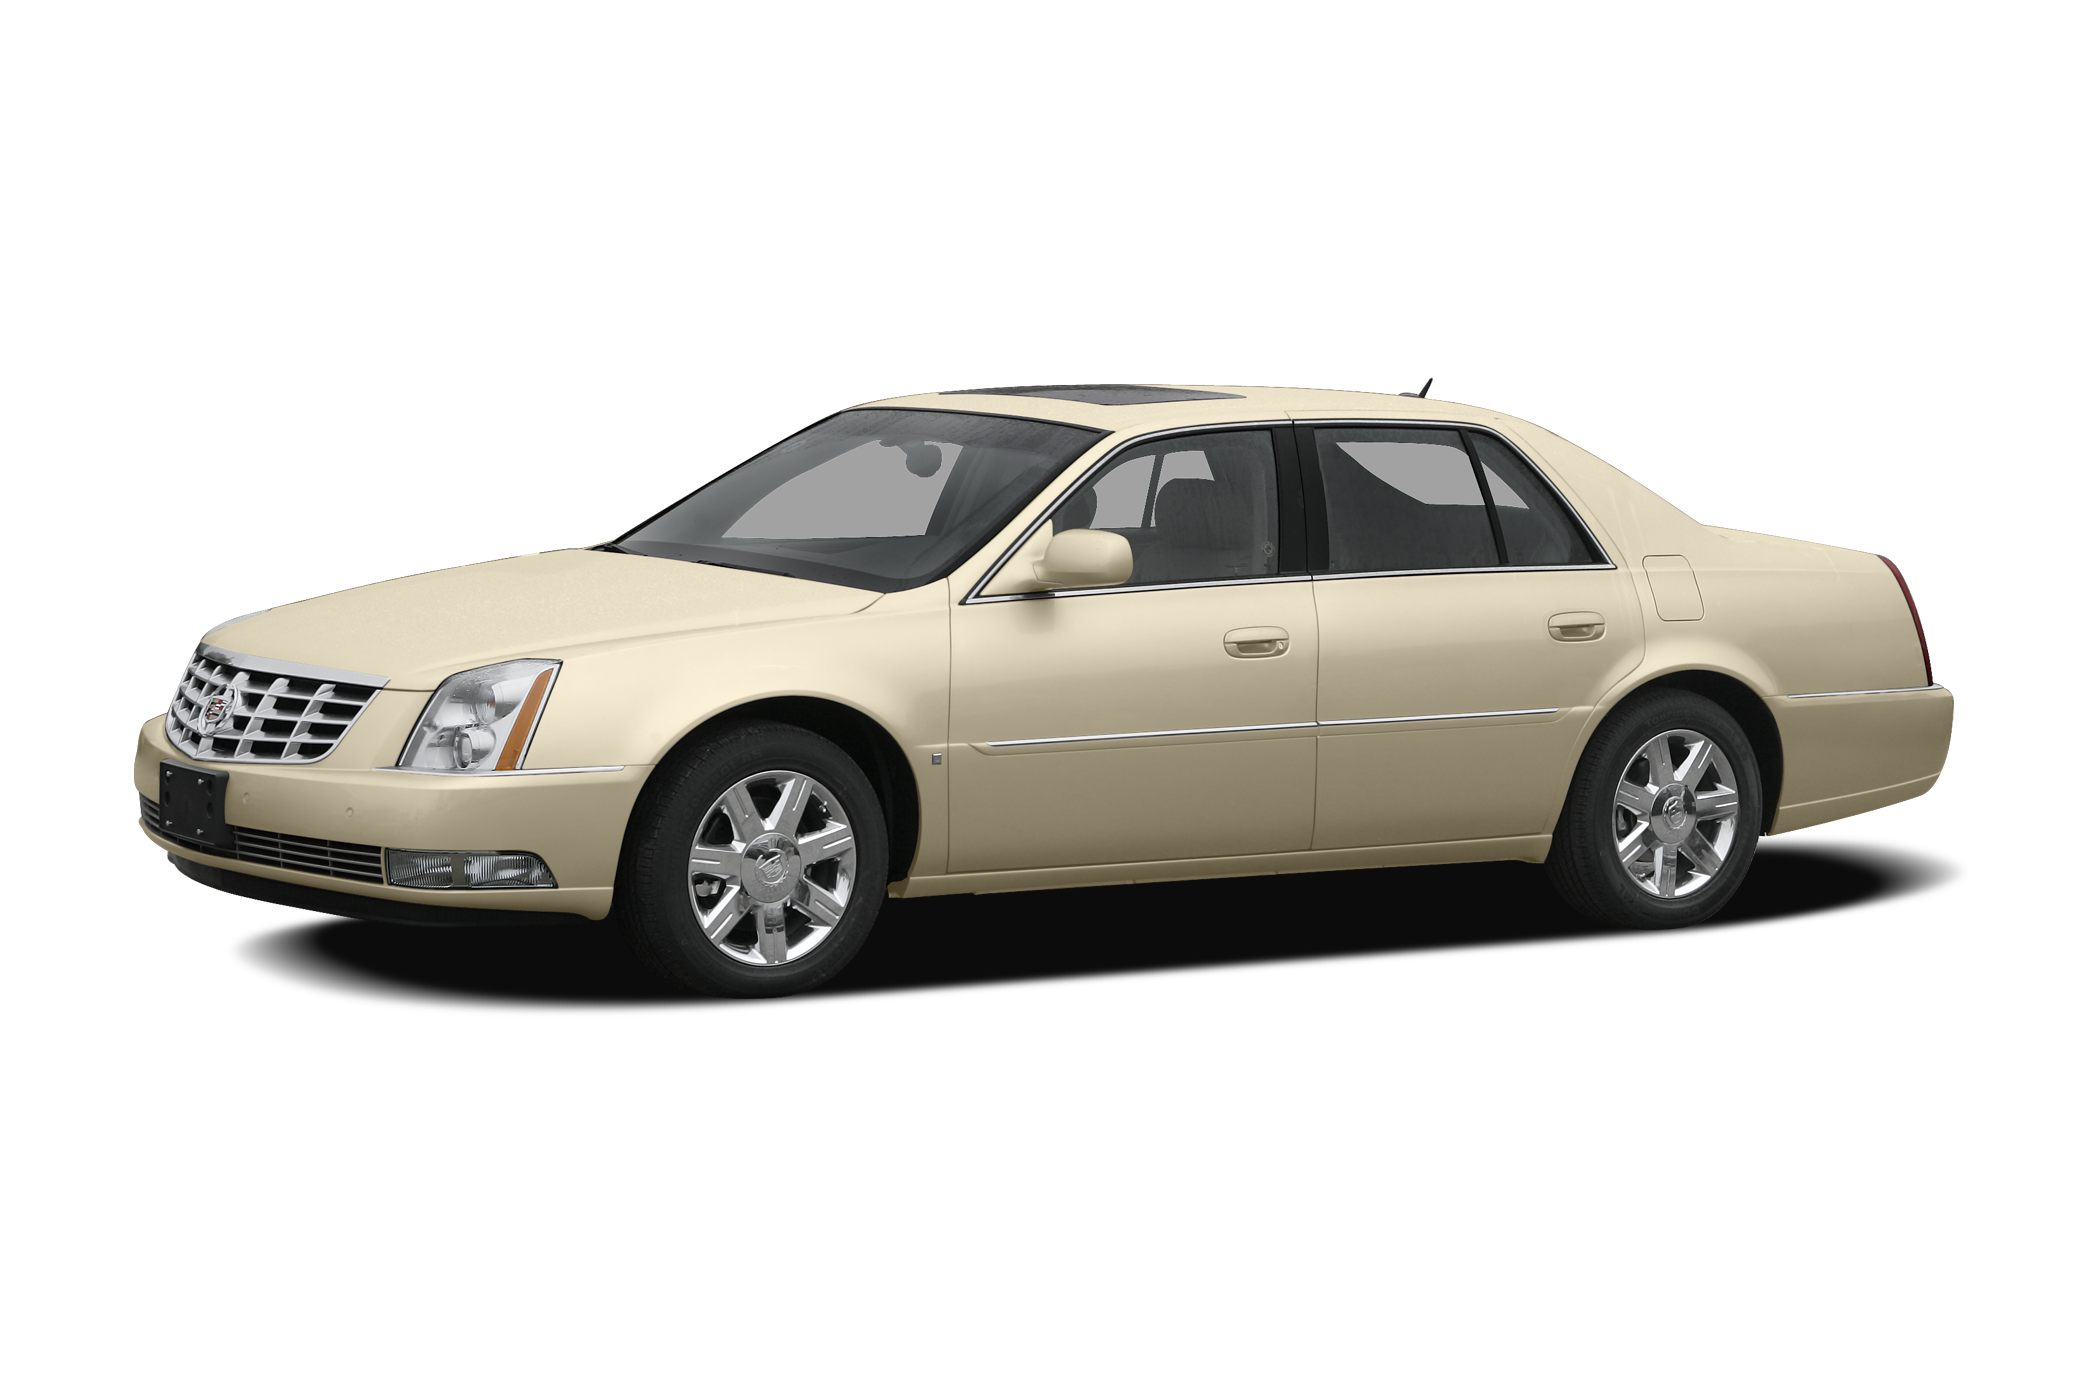 for view door lgw cadillac dts sedan l sale